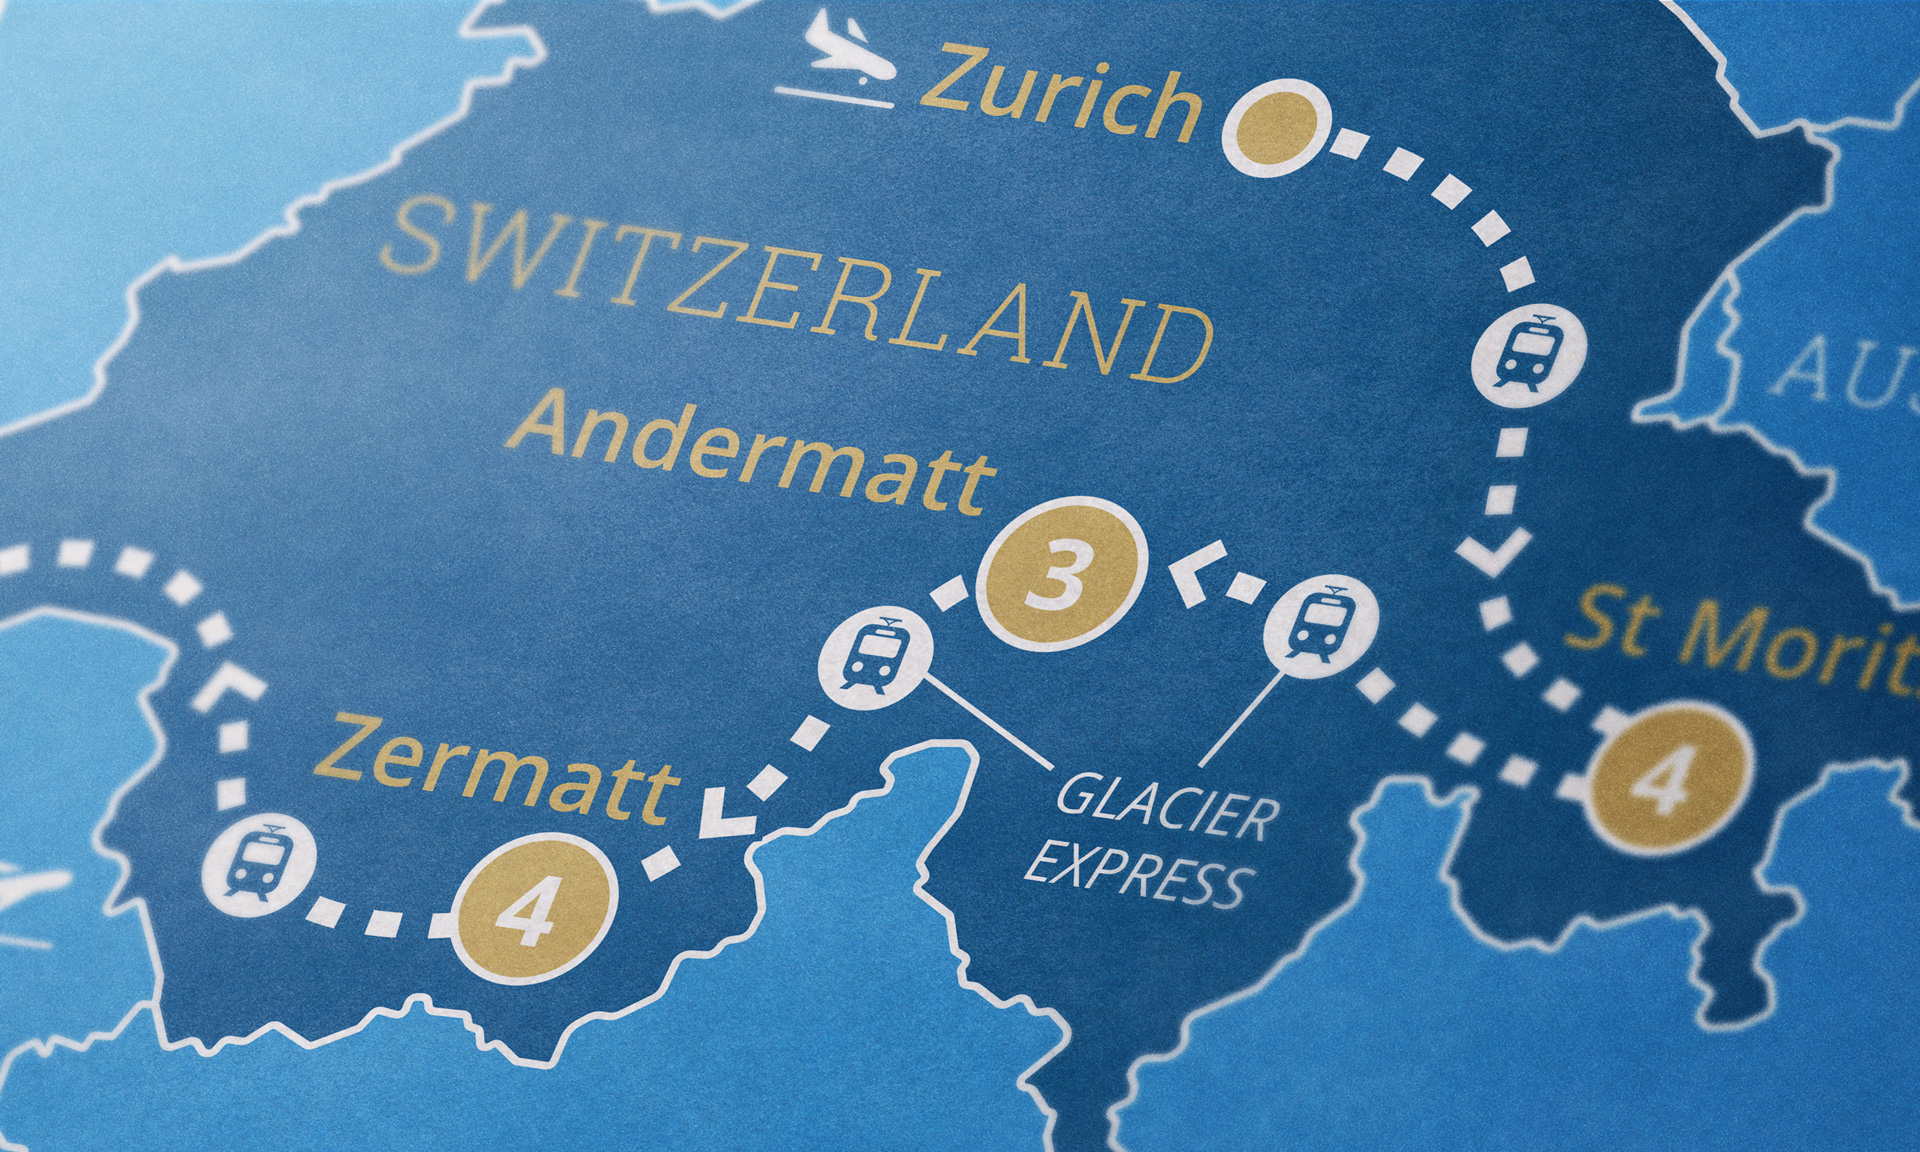 Switzerland map close-up